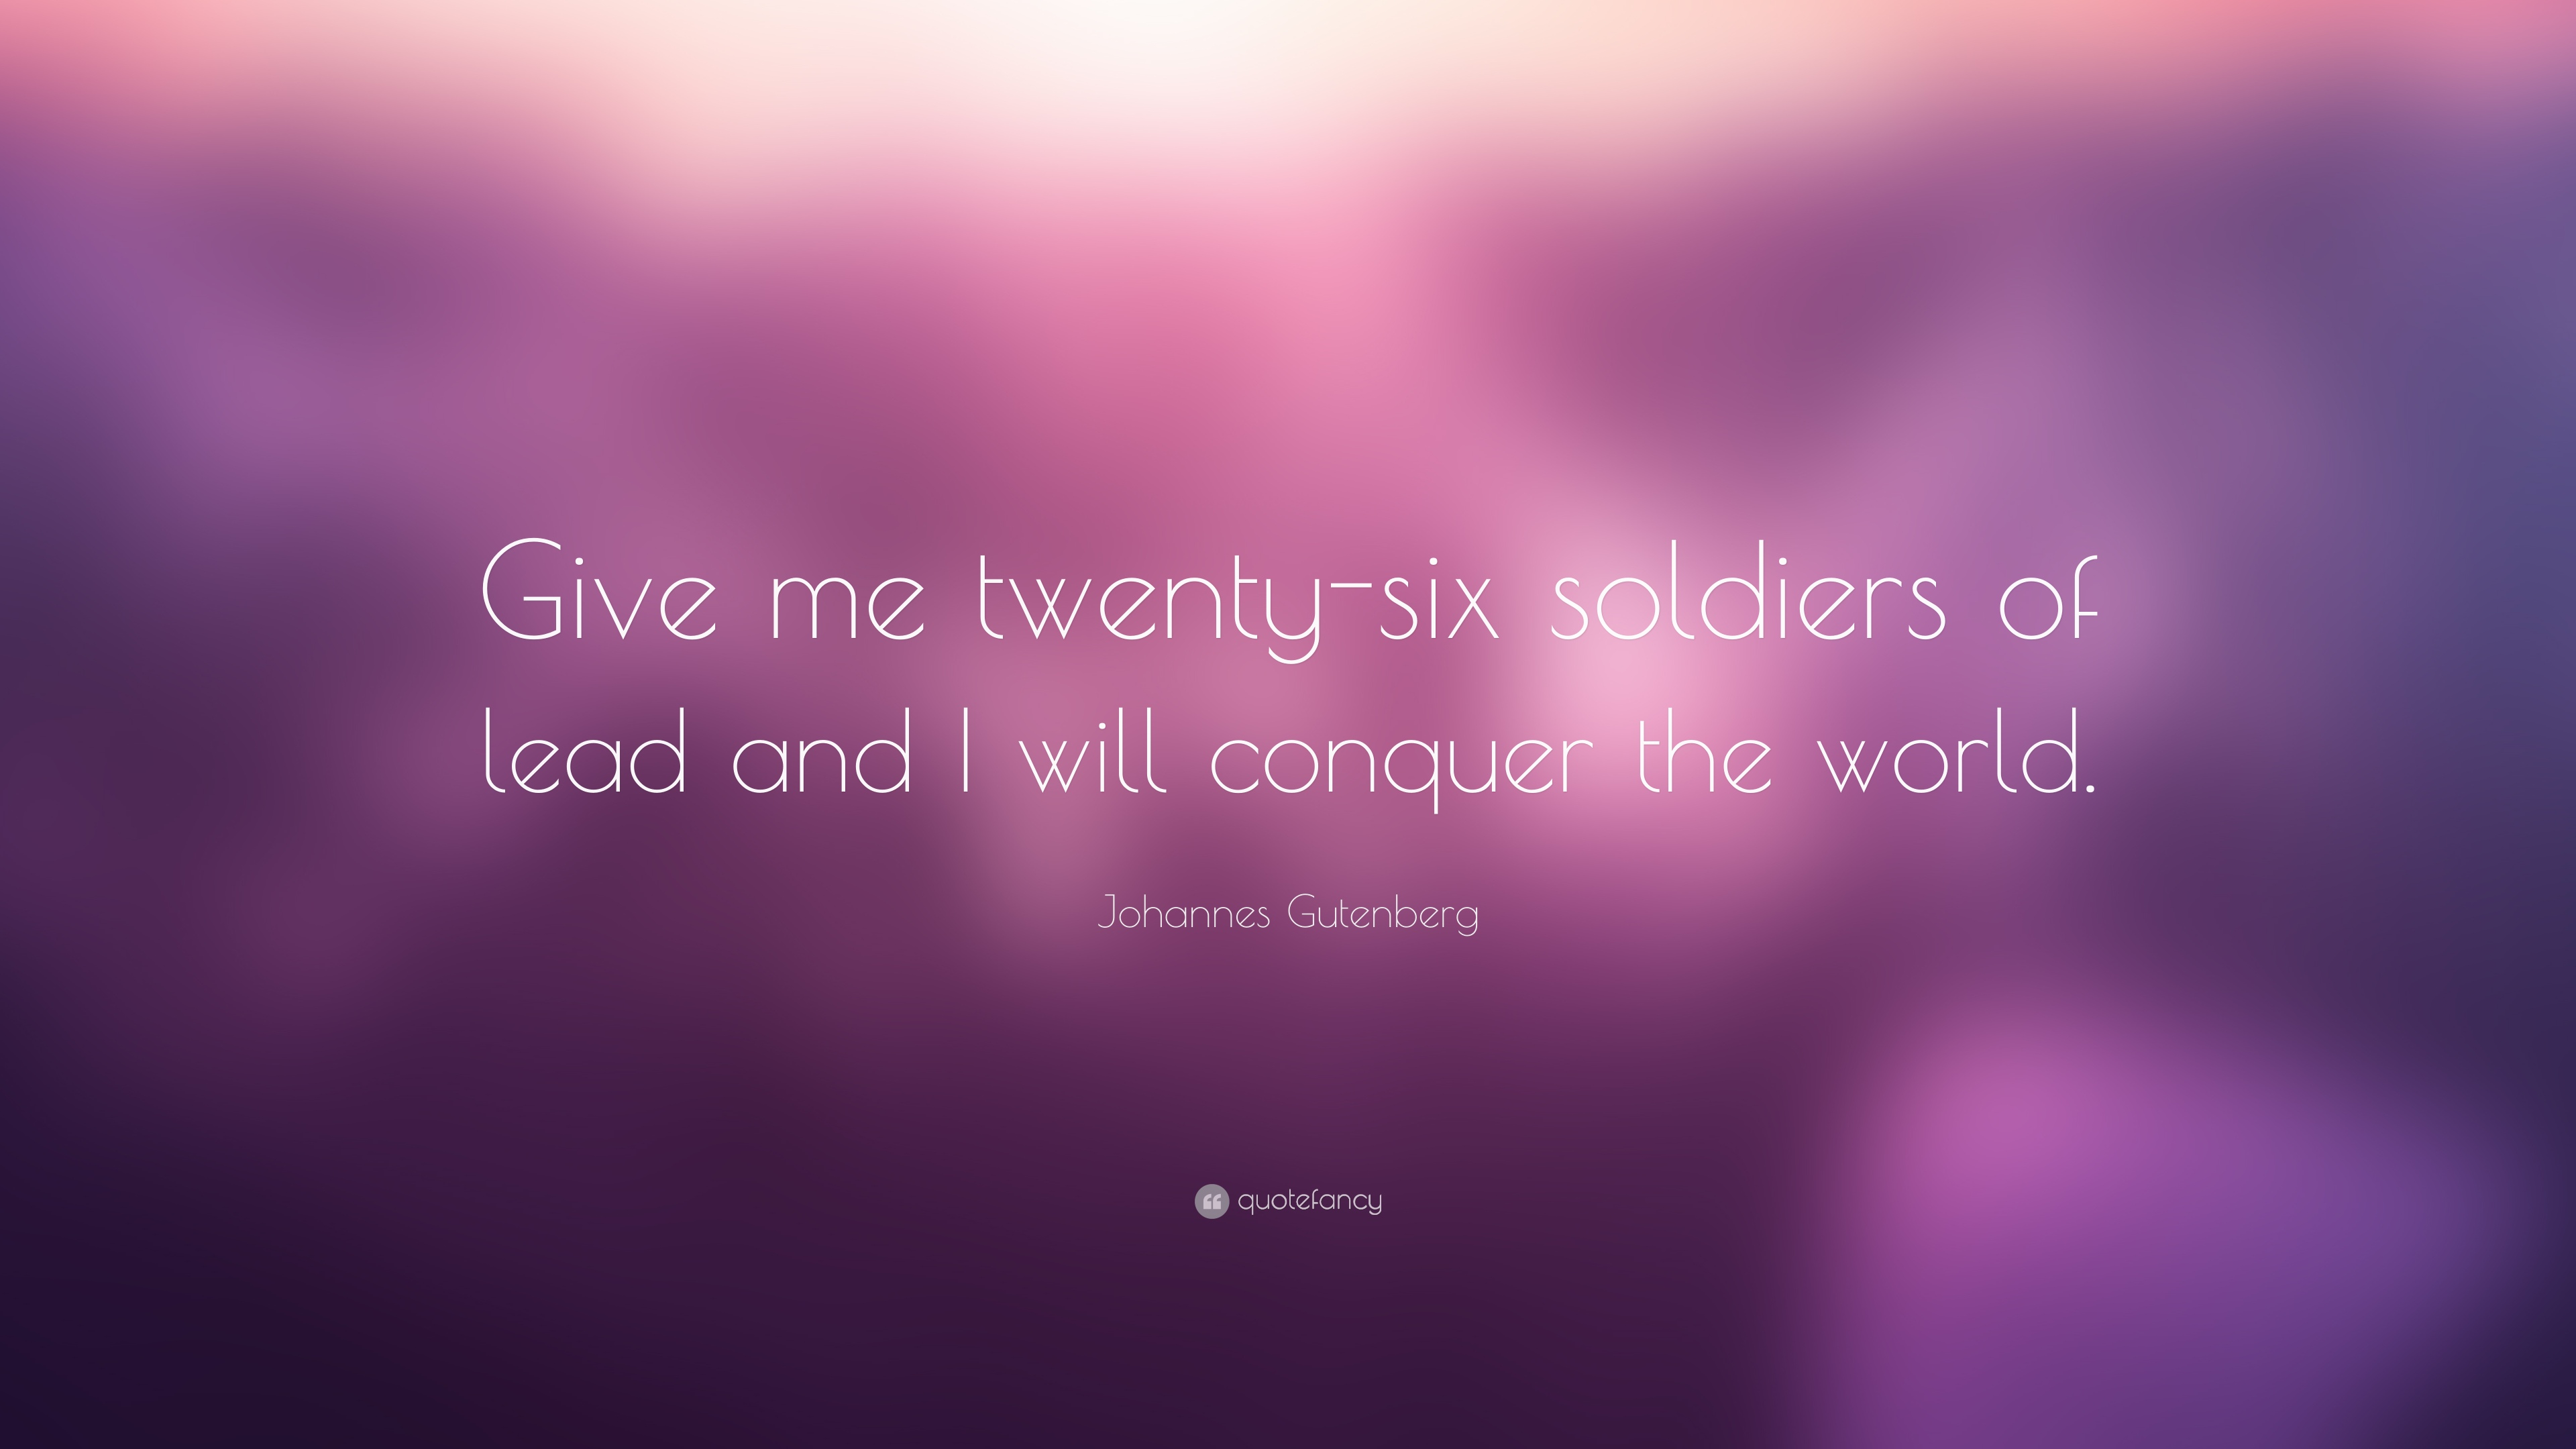 Pink Quote Saying Wallpaper Johannes Gutenberg Quotes 2 Wallpapers Quotefancy